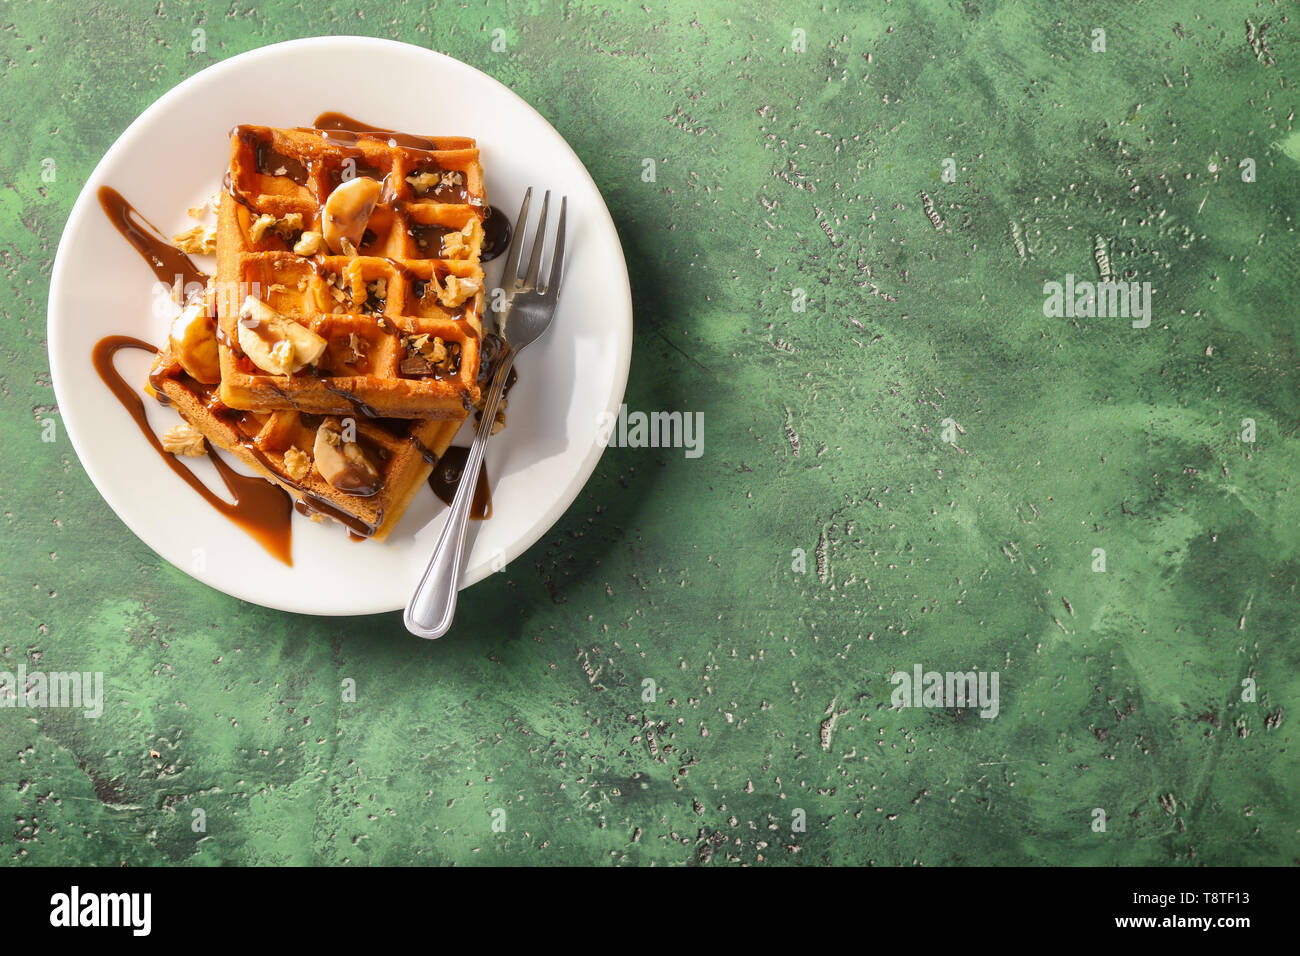 Delicious waffles with banana slices and chocolate sauce on color table - Stock Image